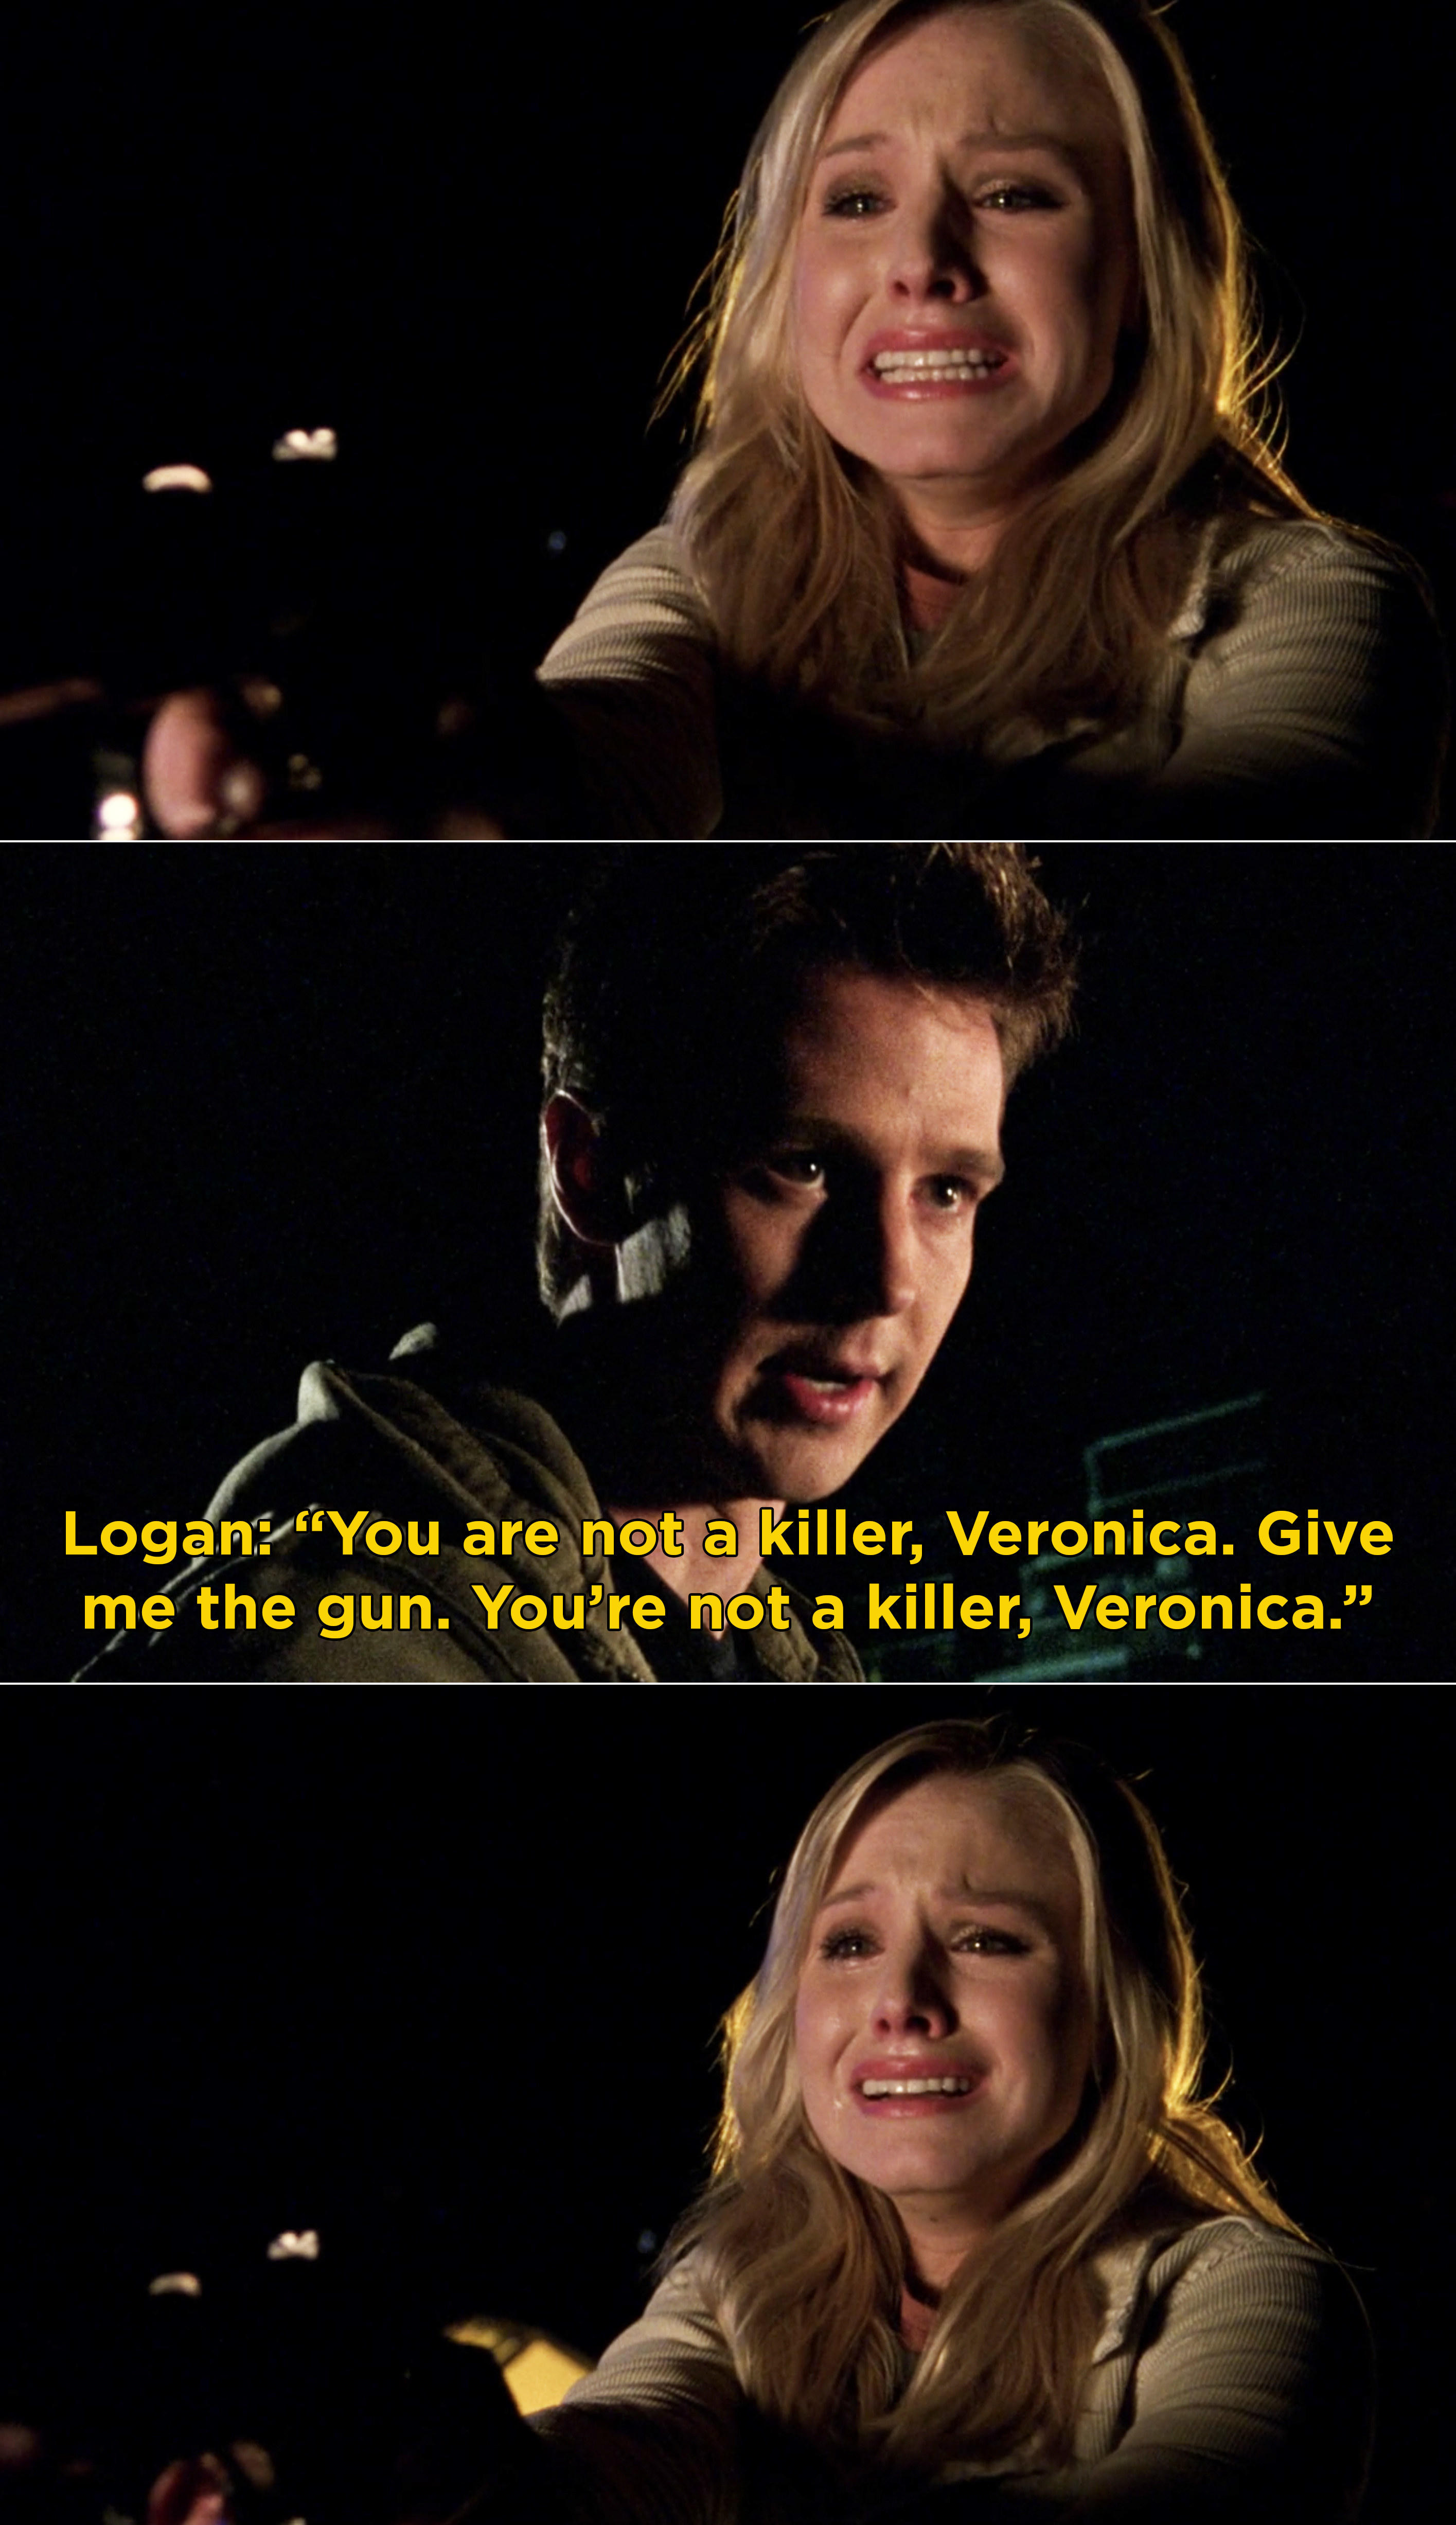 Veronica crying and Logan telling her that she's not a killer and needs to give him the gun